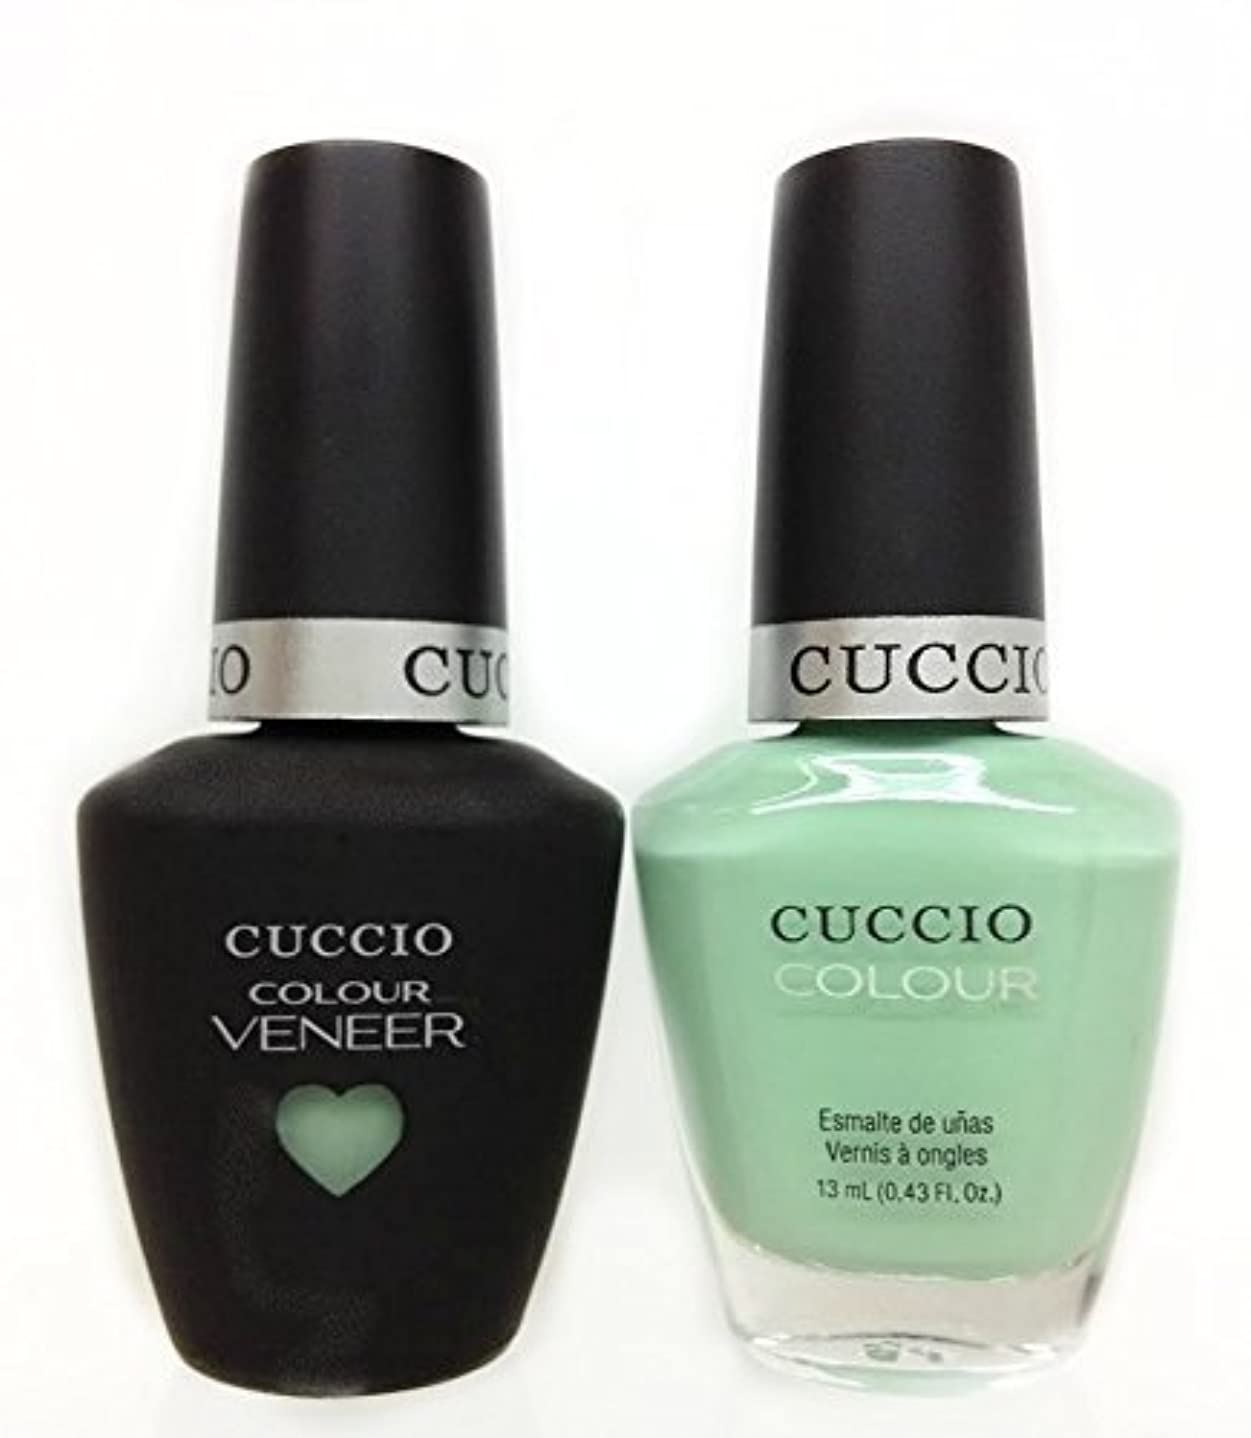 清める法令申し込むCuccio MatchMakers Veneer & Lacquer - Mint Condition - 0.43oz / 13ml Each